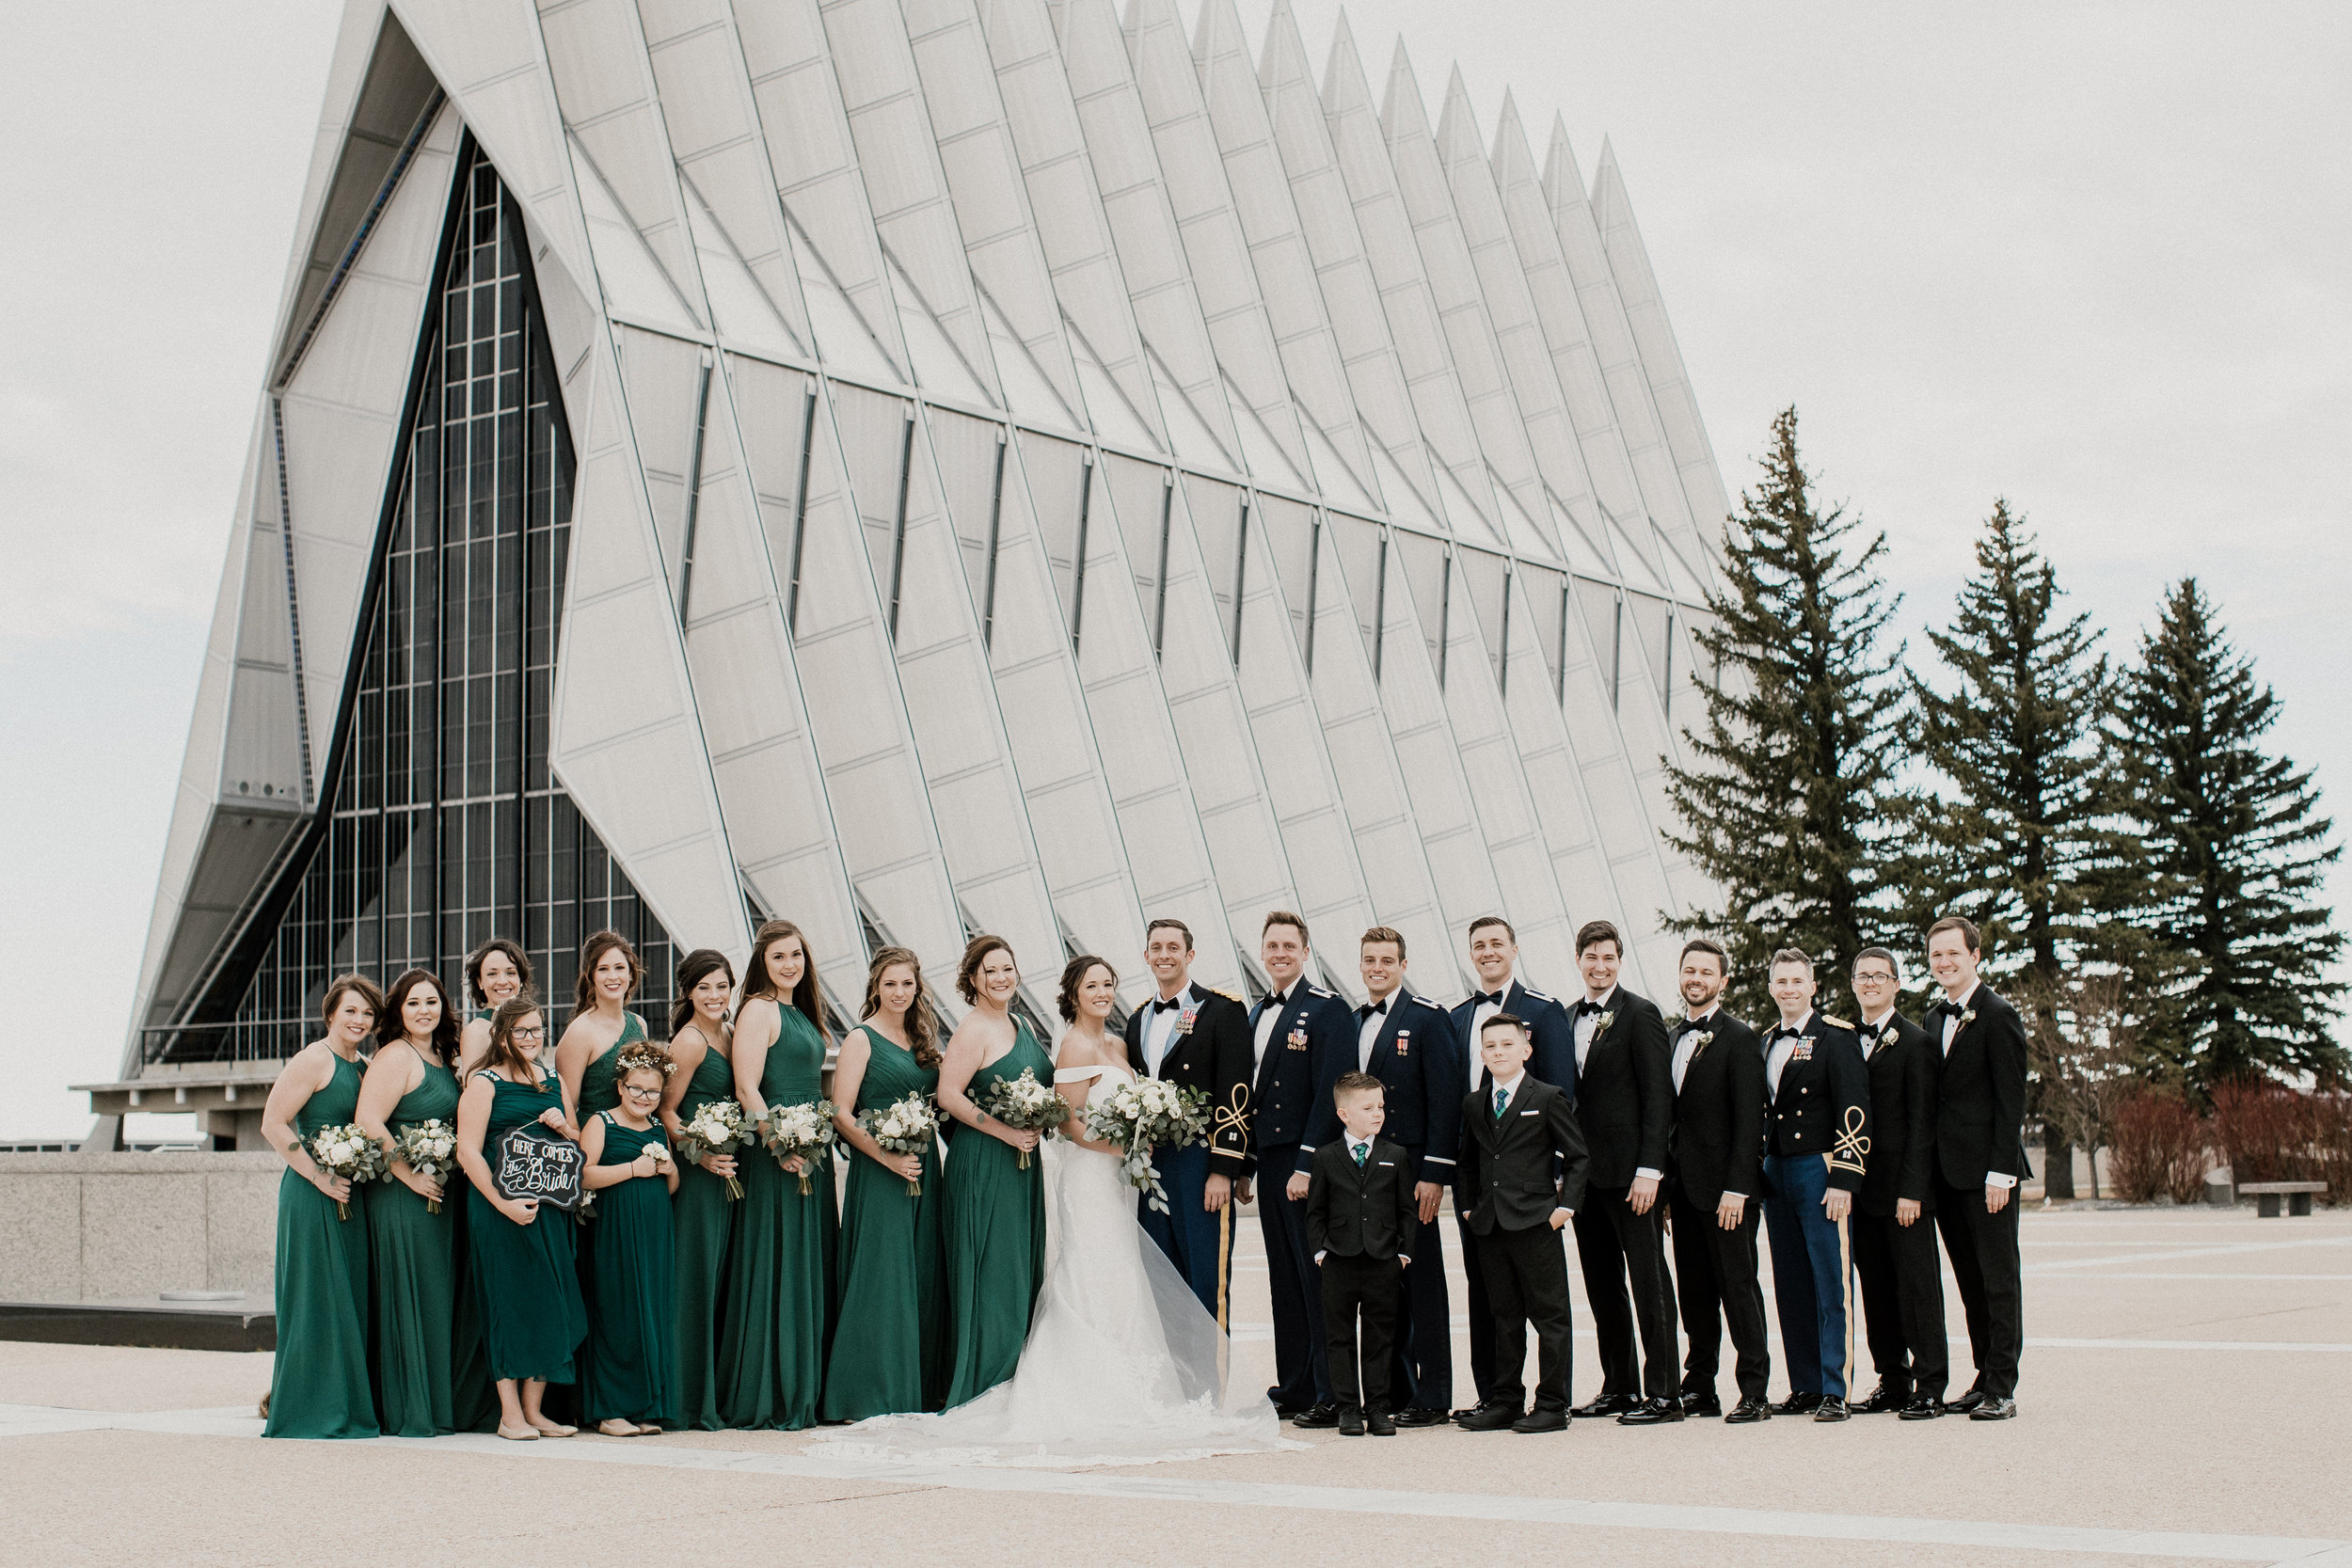 Military Wedding at the AF Academy Cadet Chapel. By The CARRS Photography.